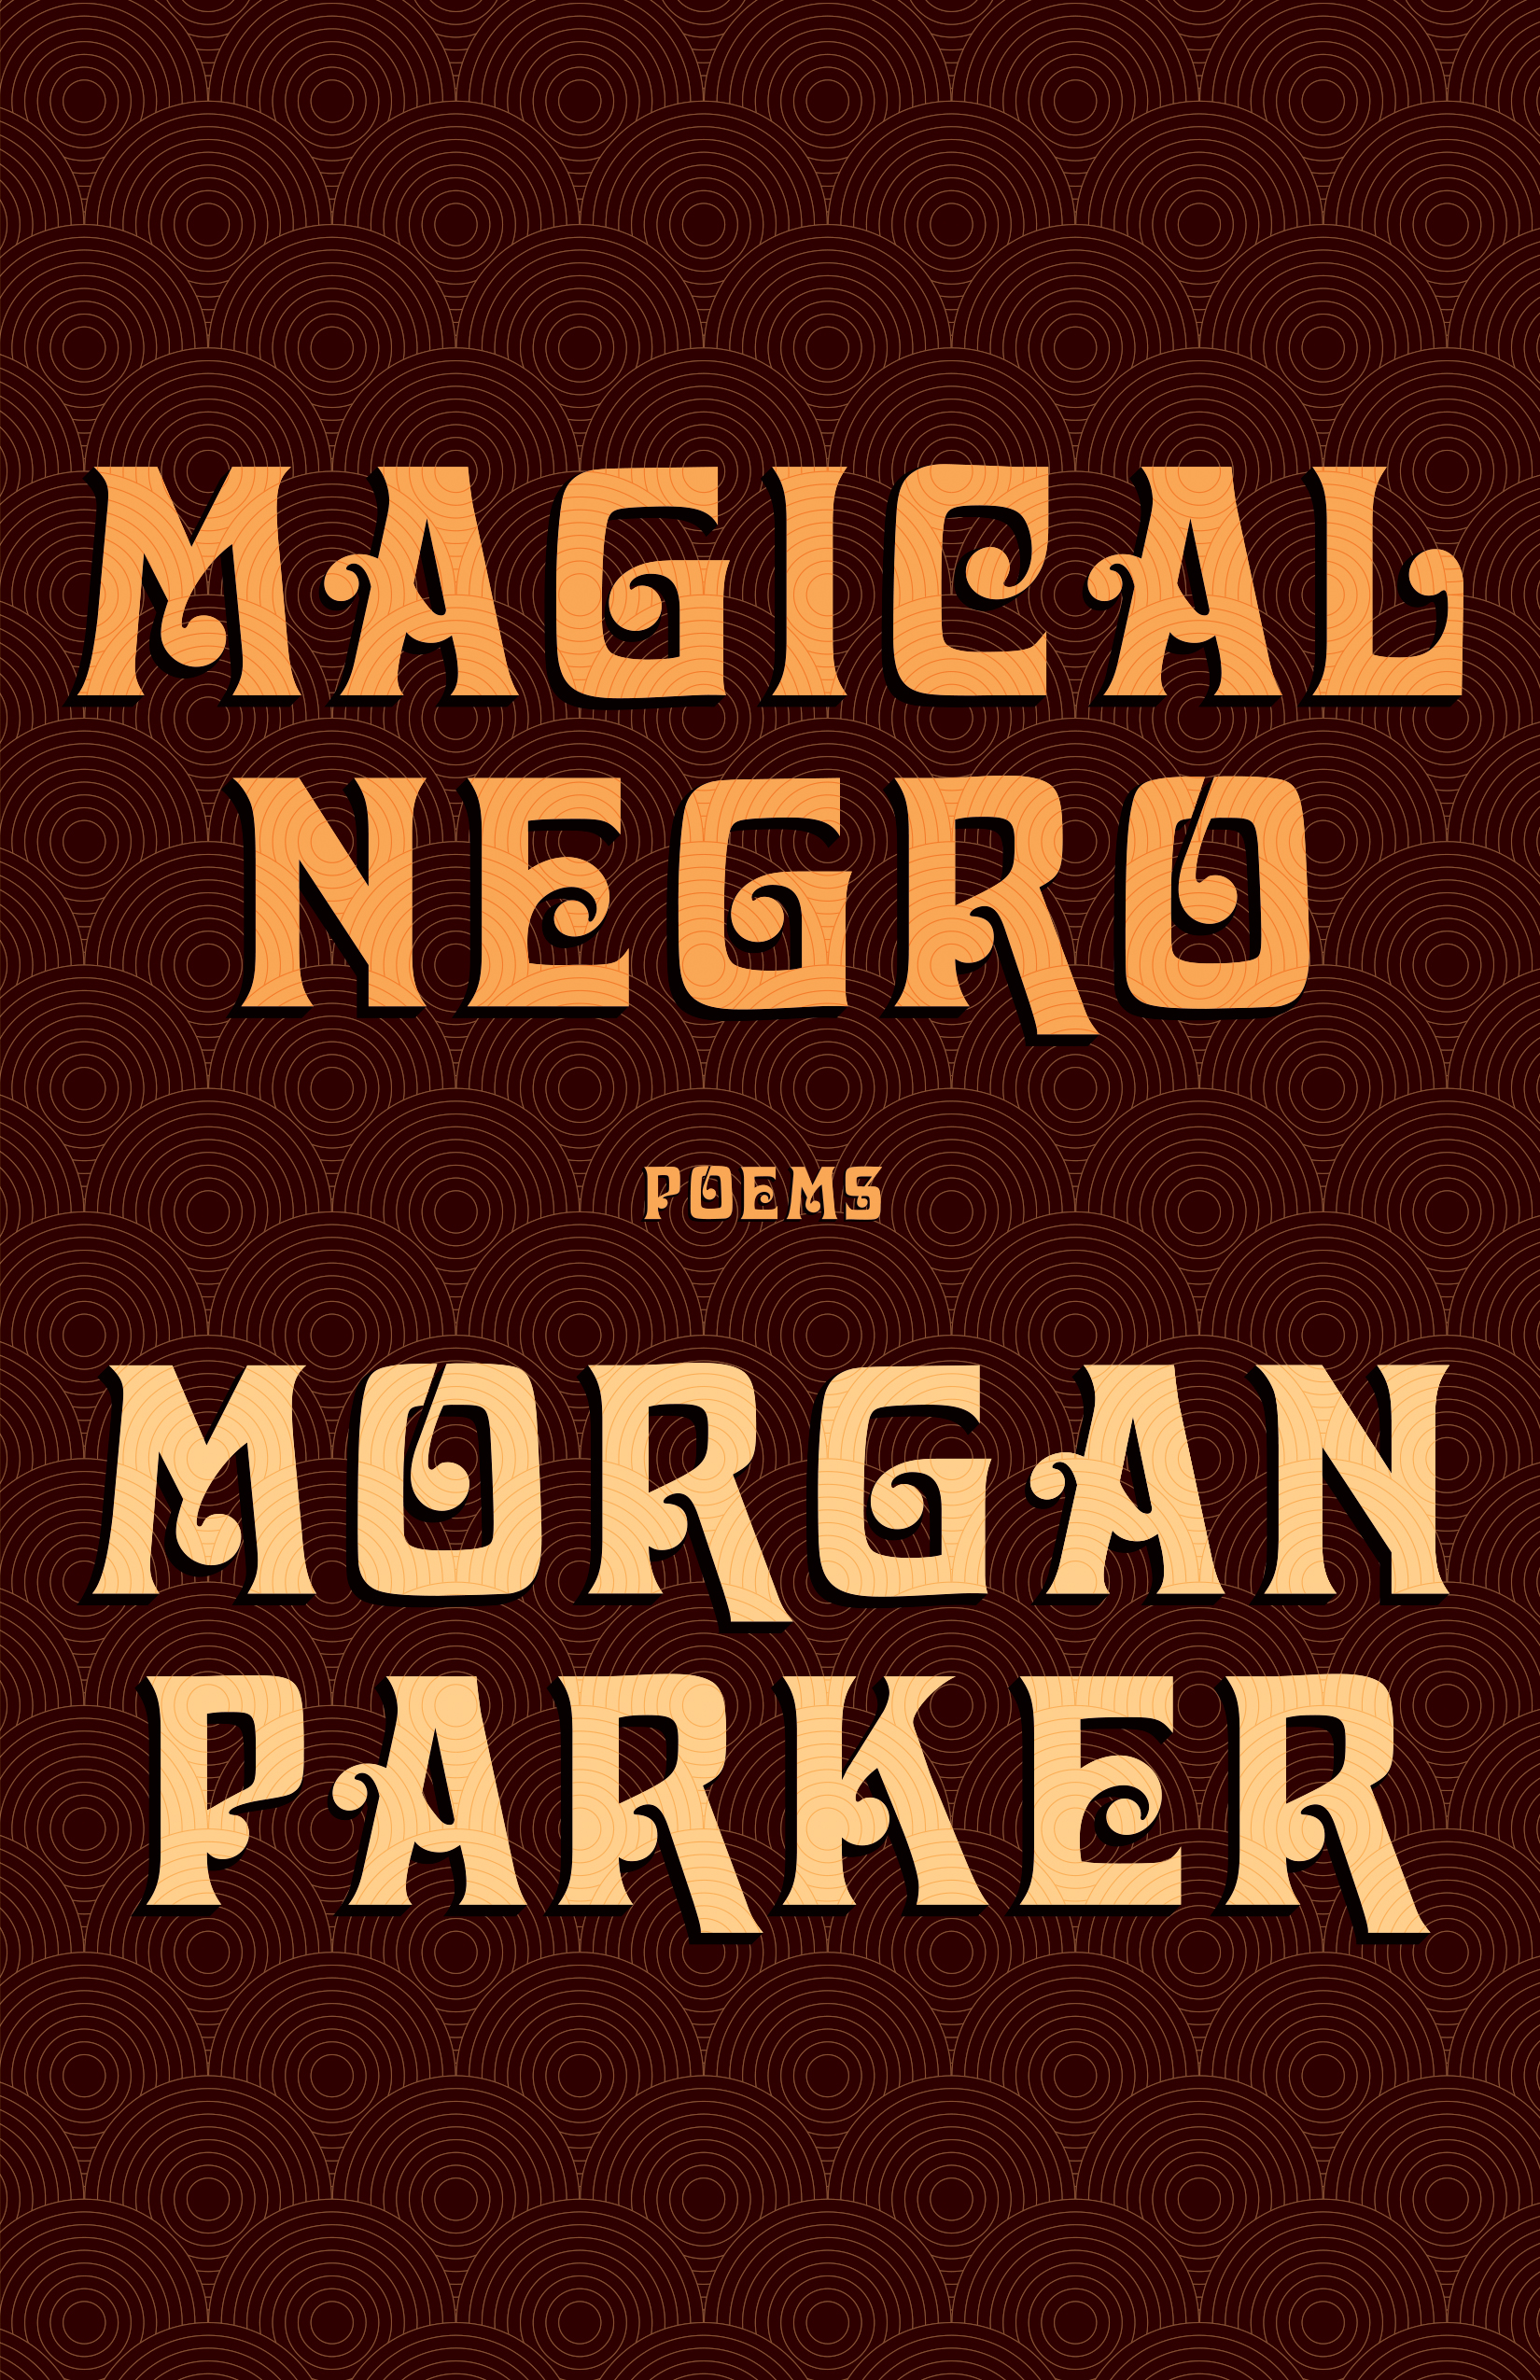 "magical negro - Poetry. Tin House, 2019.An archive of Black everydayness. Both elegy and jive, joke and declaration, songs of congregation and self-conception.""If you're anxious for your snug perspective to be rattled and ripped asunder, for the predictable landscape you stroll to become all but unrecognizable, for things you thought you knew to slap you into another consciousness―brethren, have I got the book for you. Bey's bestie continues her reign with this restless, fierce, and insanely inventive way of walking through the world. Once again, children―ignore Ms. Parker at your peril."" ―Patricia Smith"